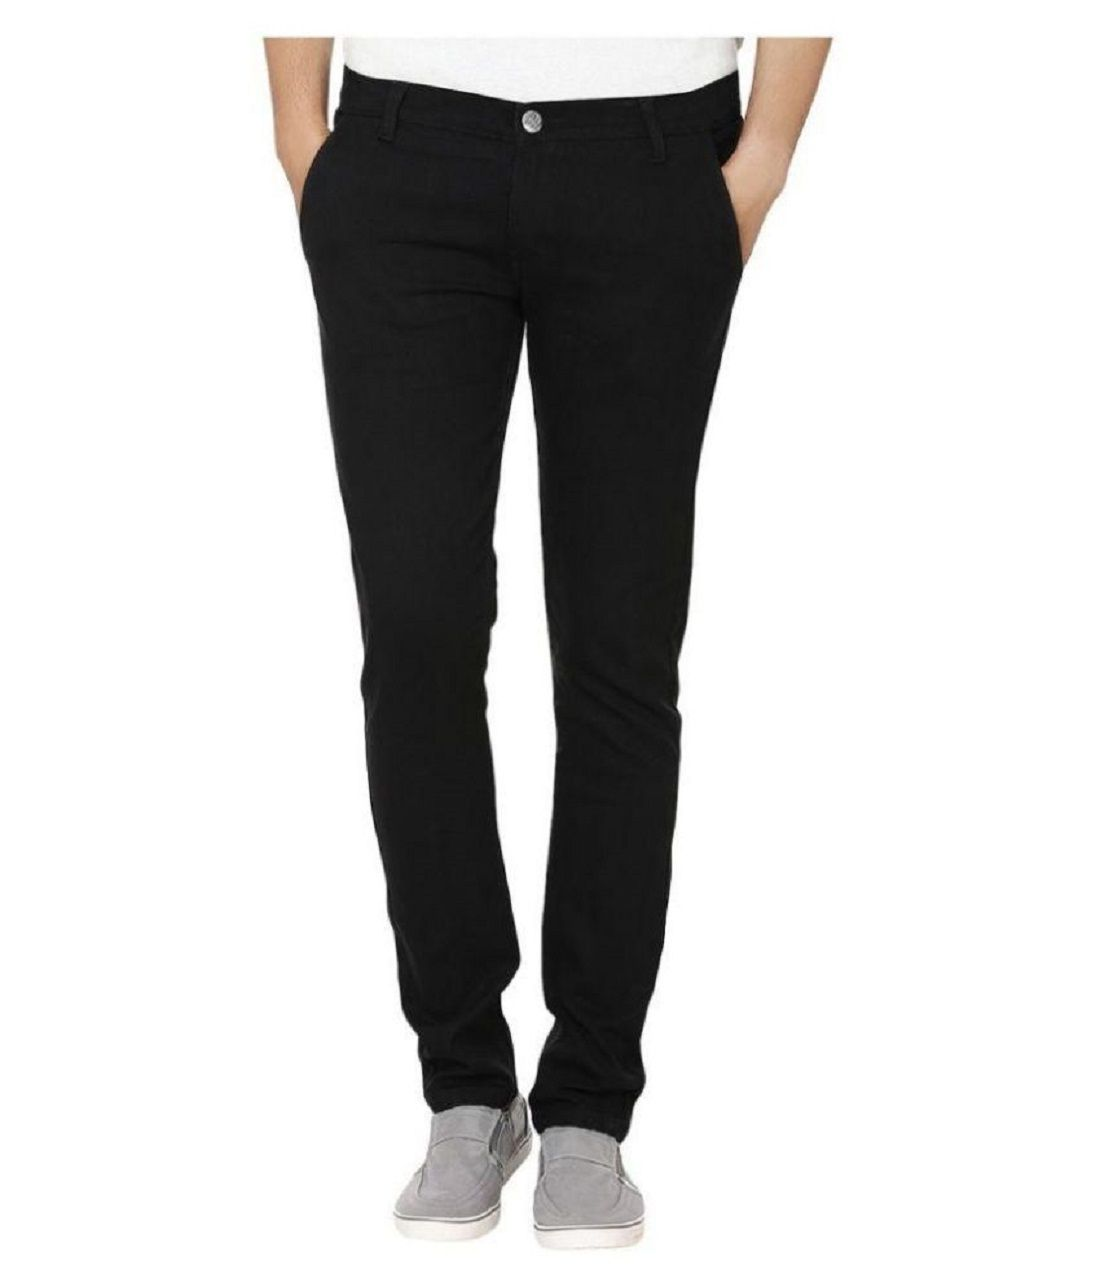 ebdd8a32c Urbano Fashion Black Slim Jeans - Buy Urbano Fashion Black Slim ...